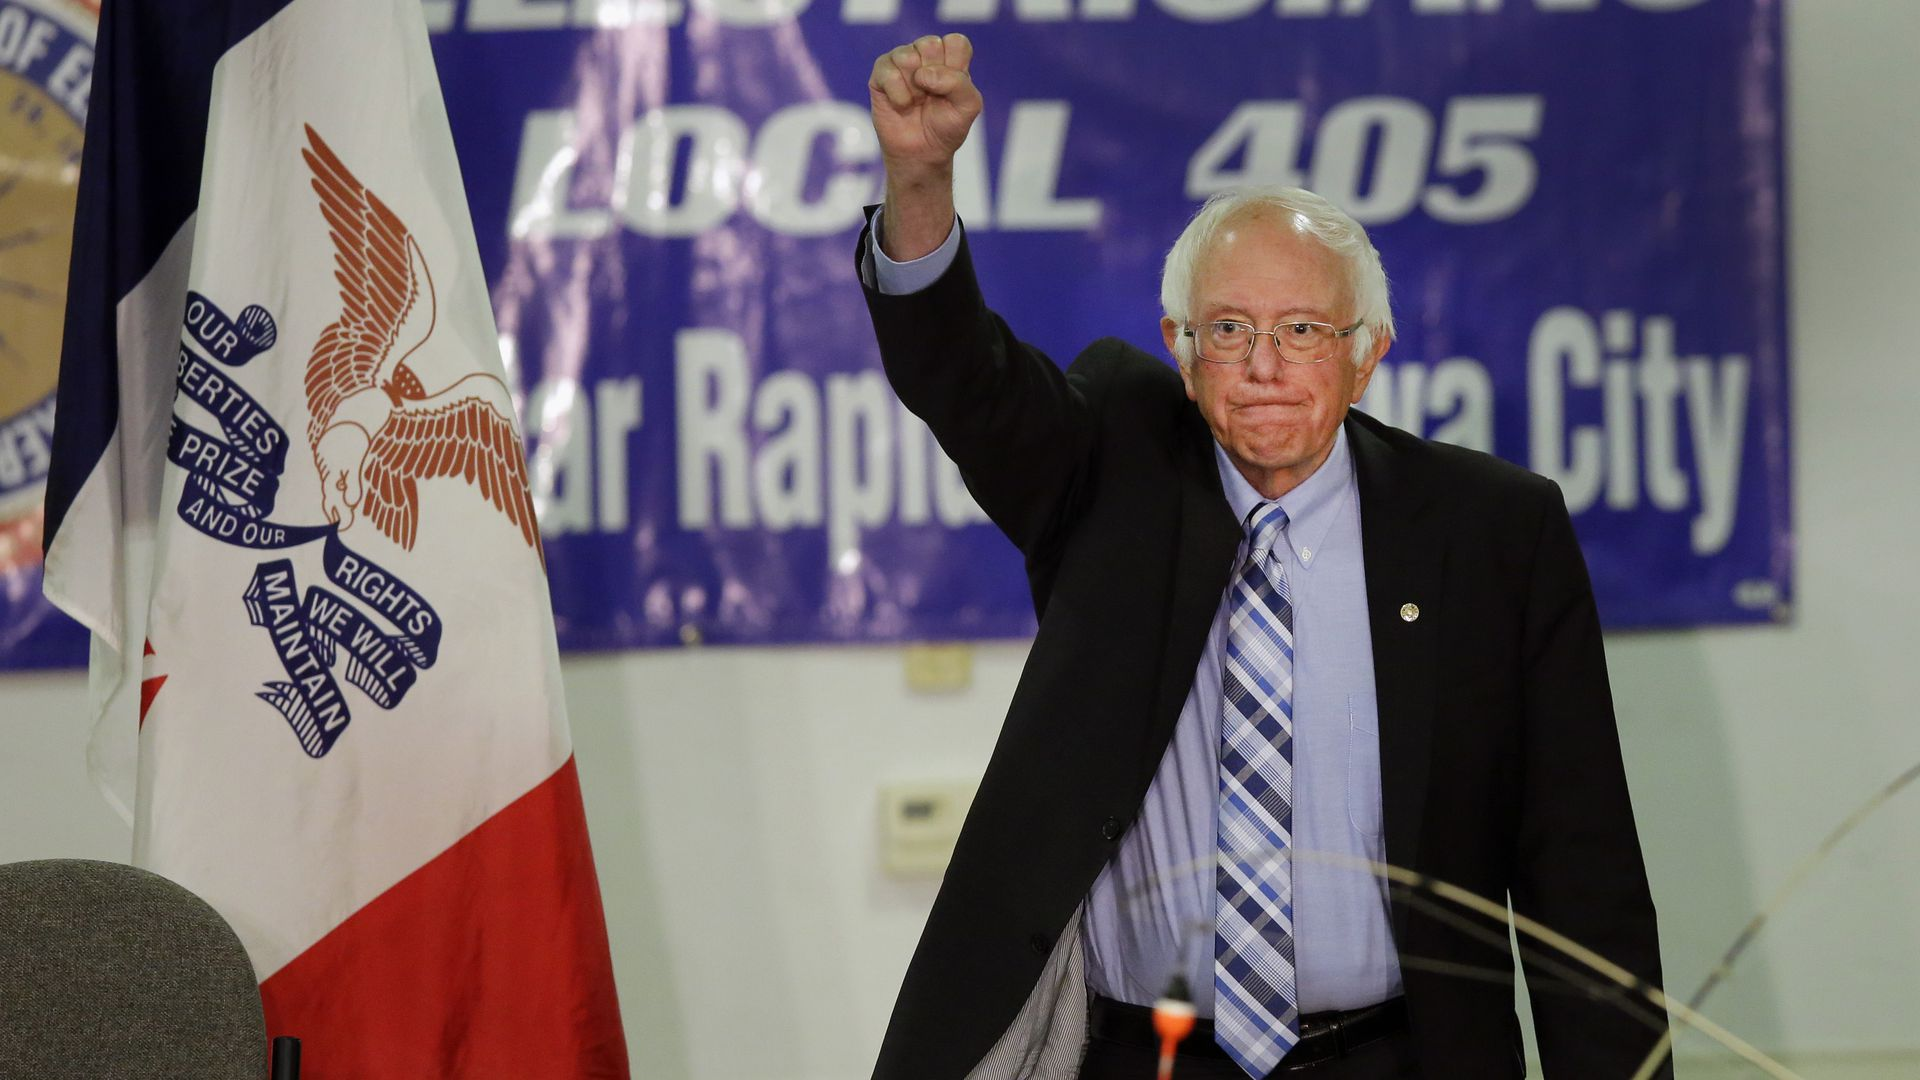 Bernie Sanders raises a fist at a crowd.